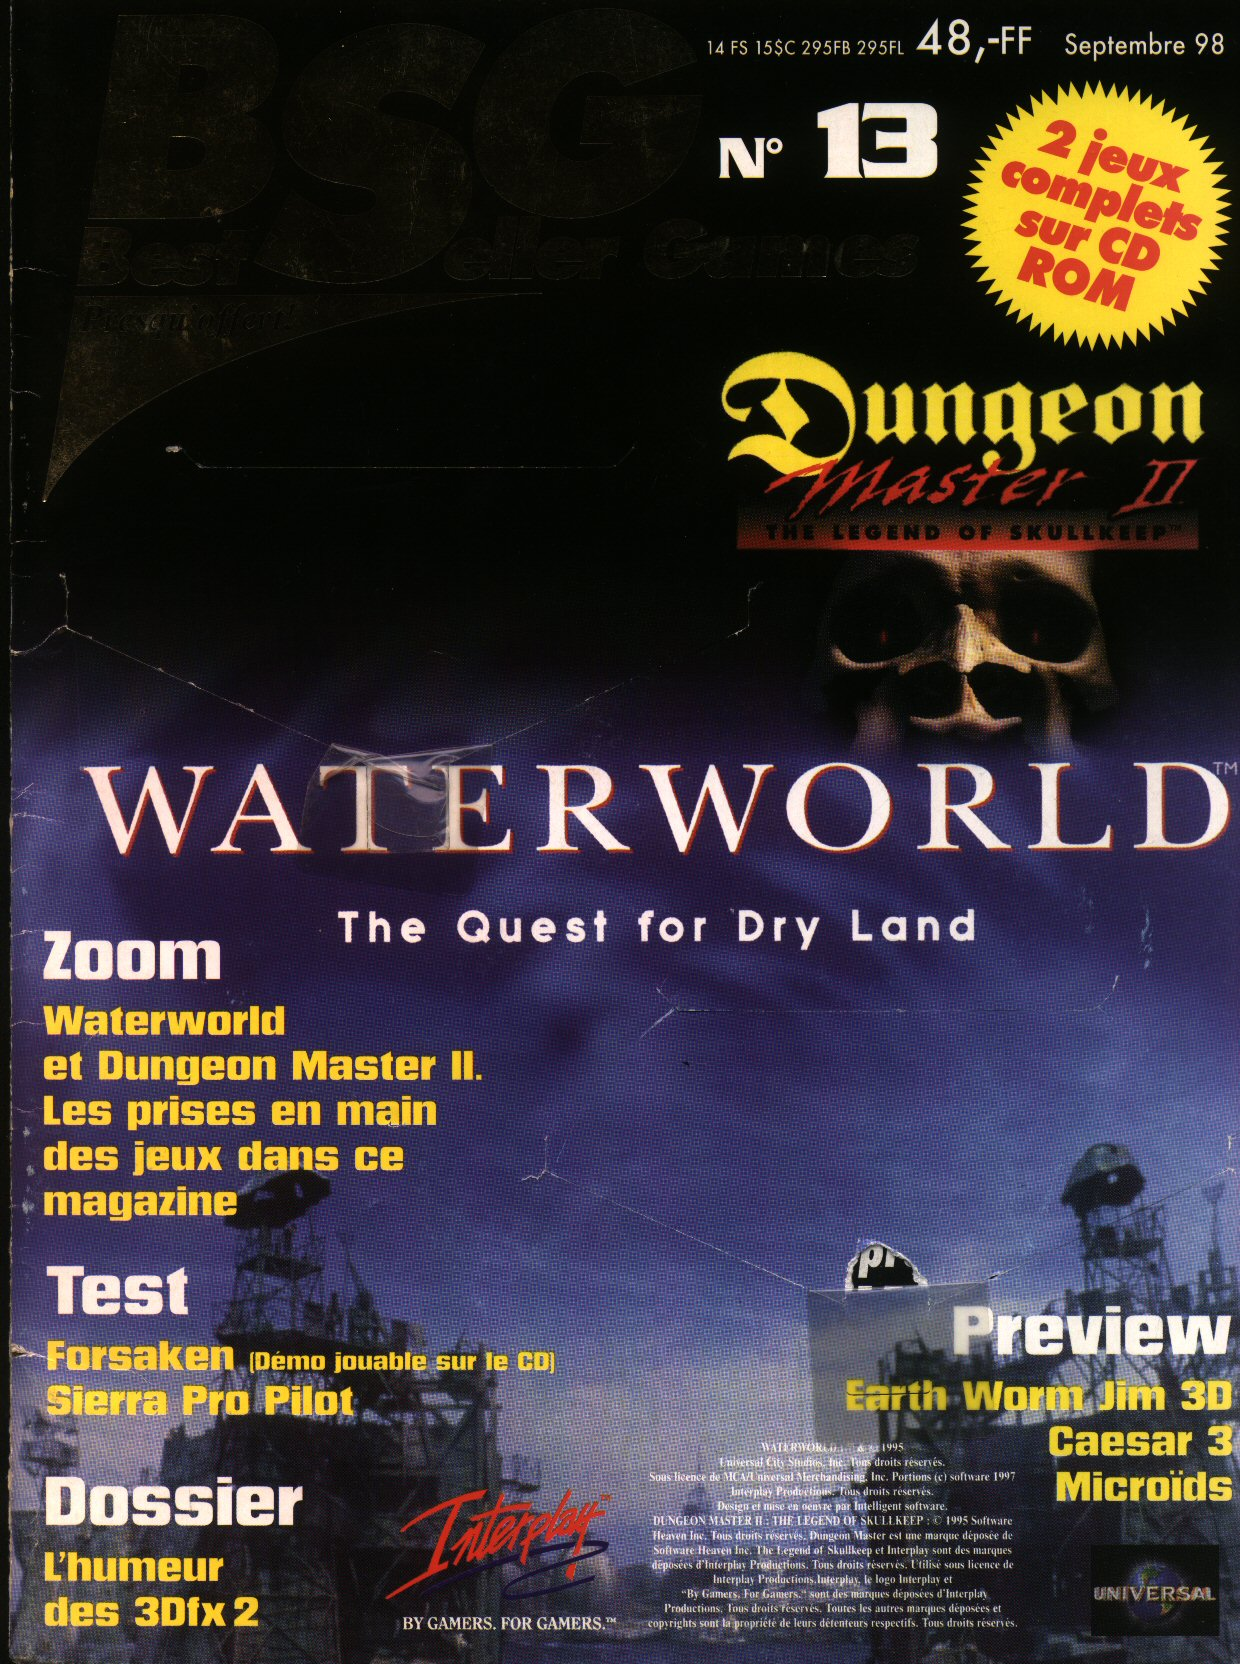 Dungeon Master II for PC (French) - CD version from French magazine 'Best Seller Games' Issue #13, September 1998 - Cover